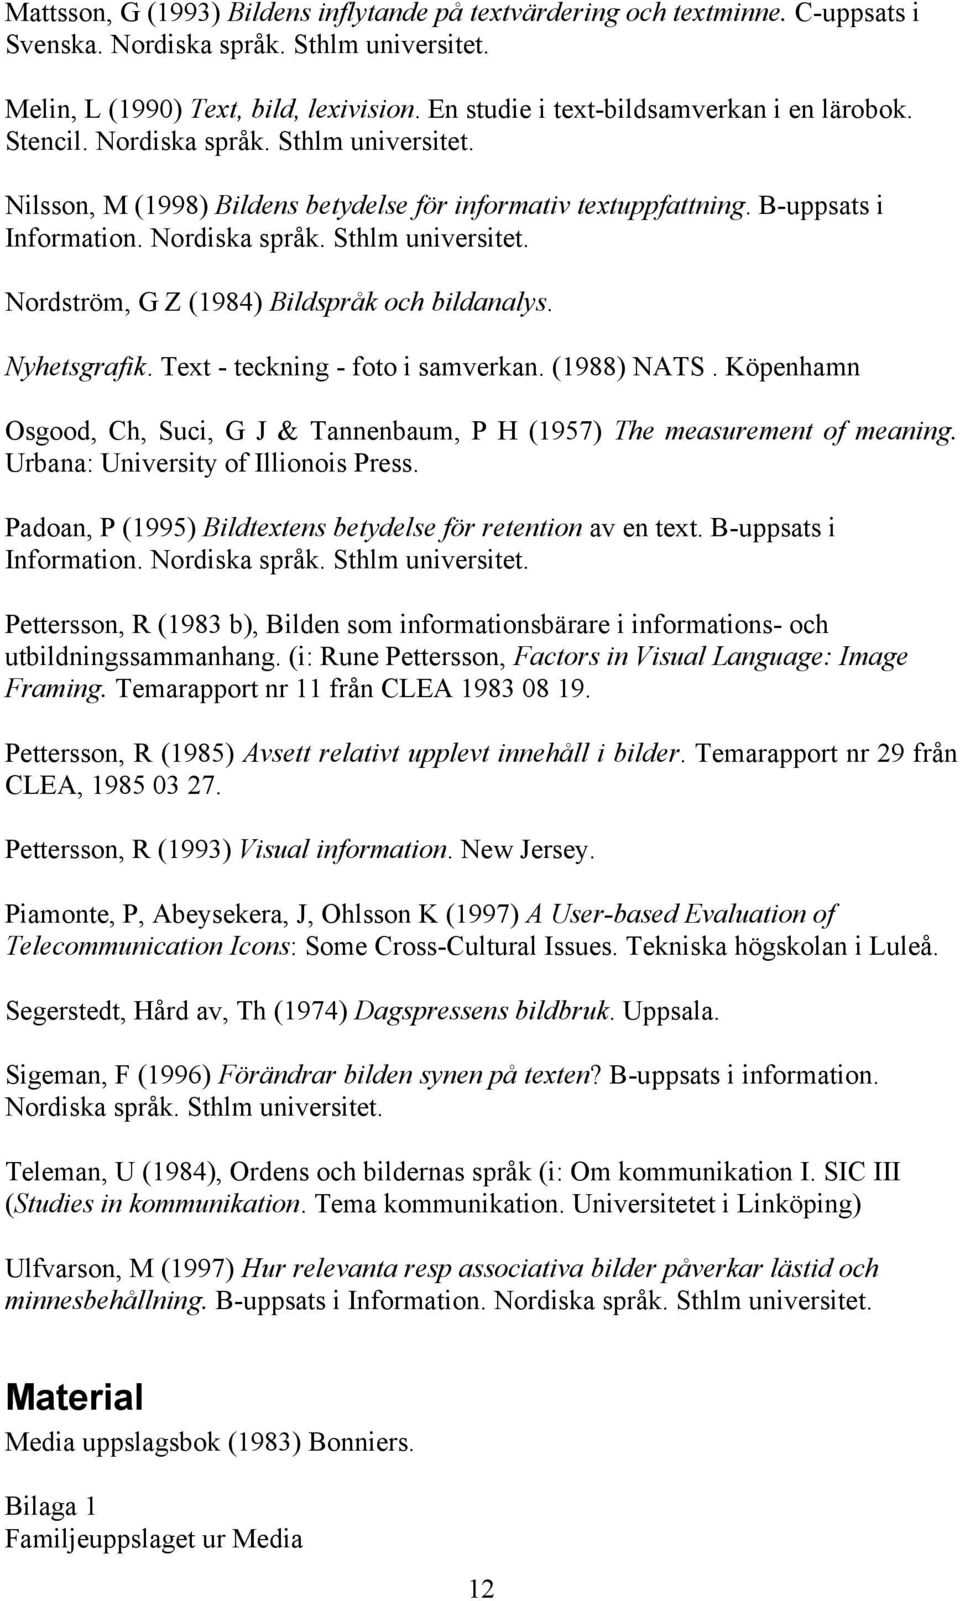 Nyhetsgrafik. Text - teckning - foto i samverkan. (1988) NATS. Köpenhamn Osgood, Ch, Suci, G J & Tannenbaum, P H (1957) The measurement of meaning. Urbana: University of Illionois Press.